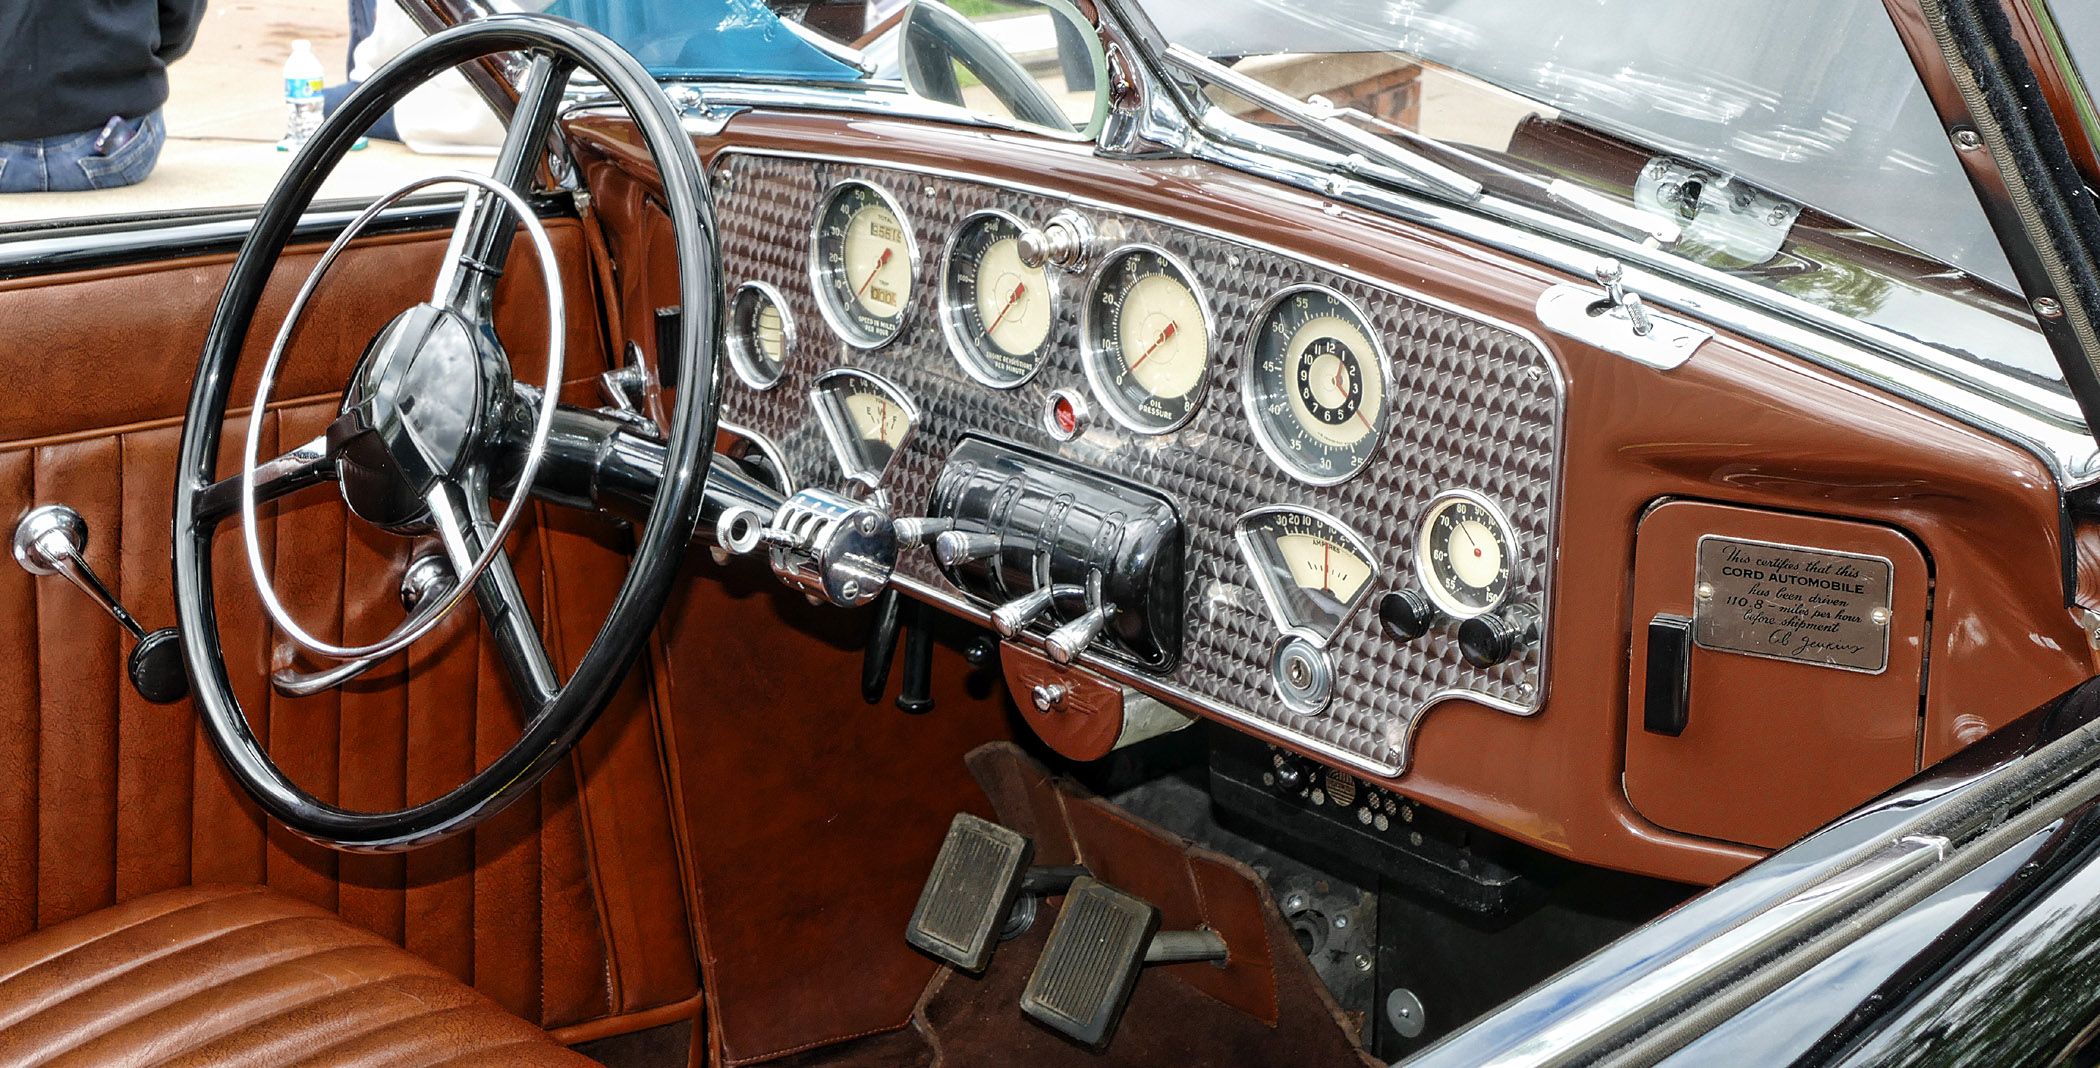 1936-CORD-DASH.-NOTE-108-MPH-SPEED-CERTIFICATION